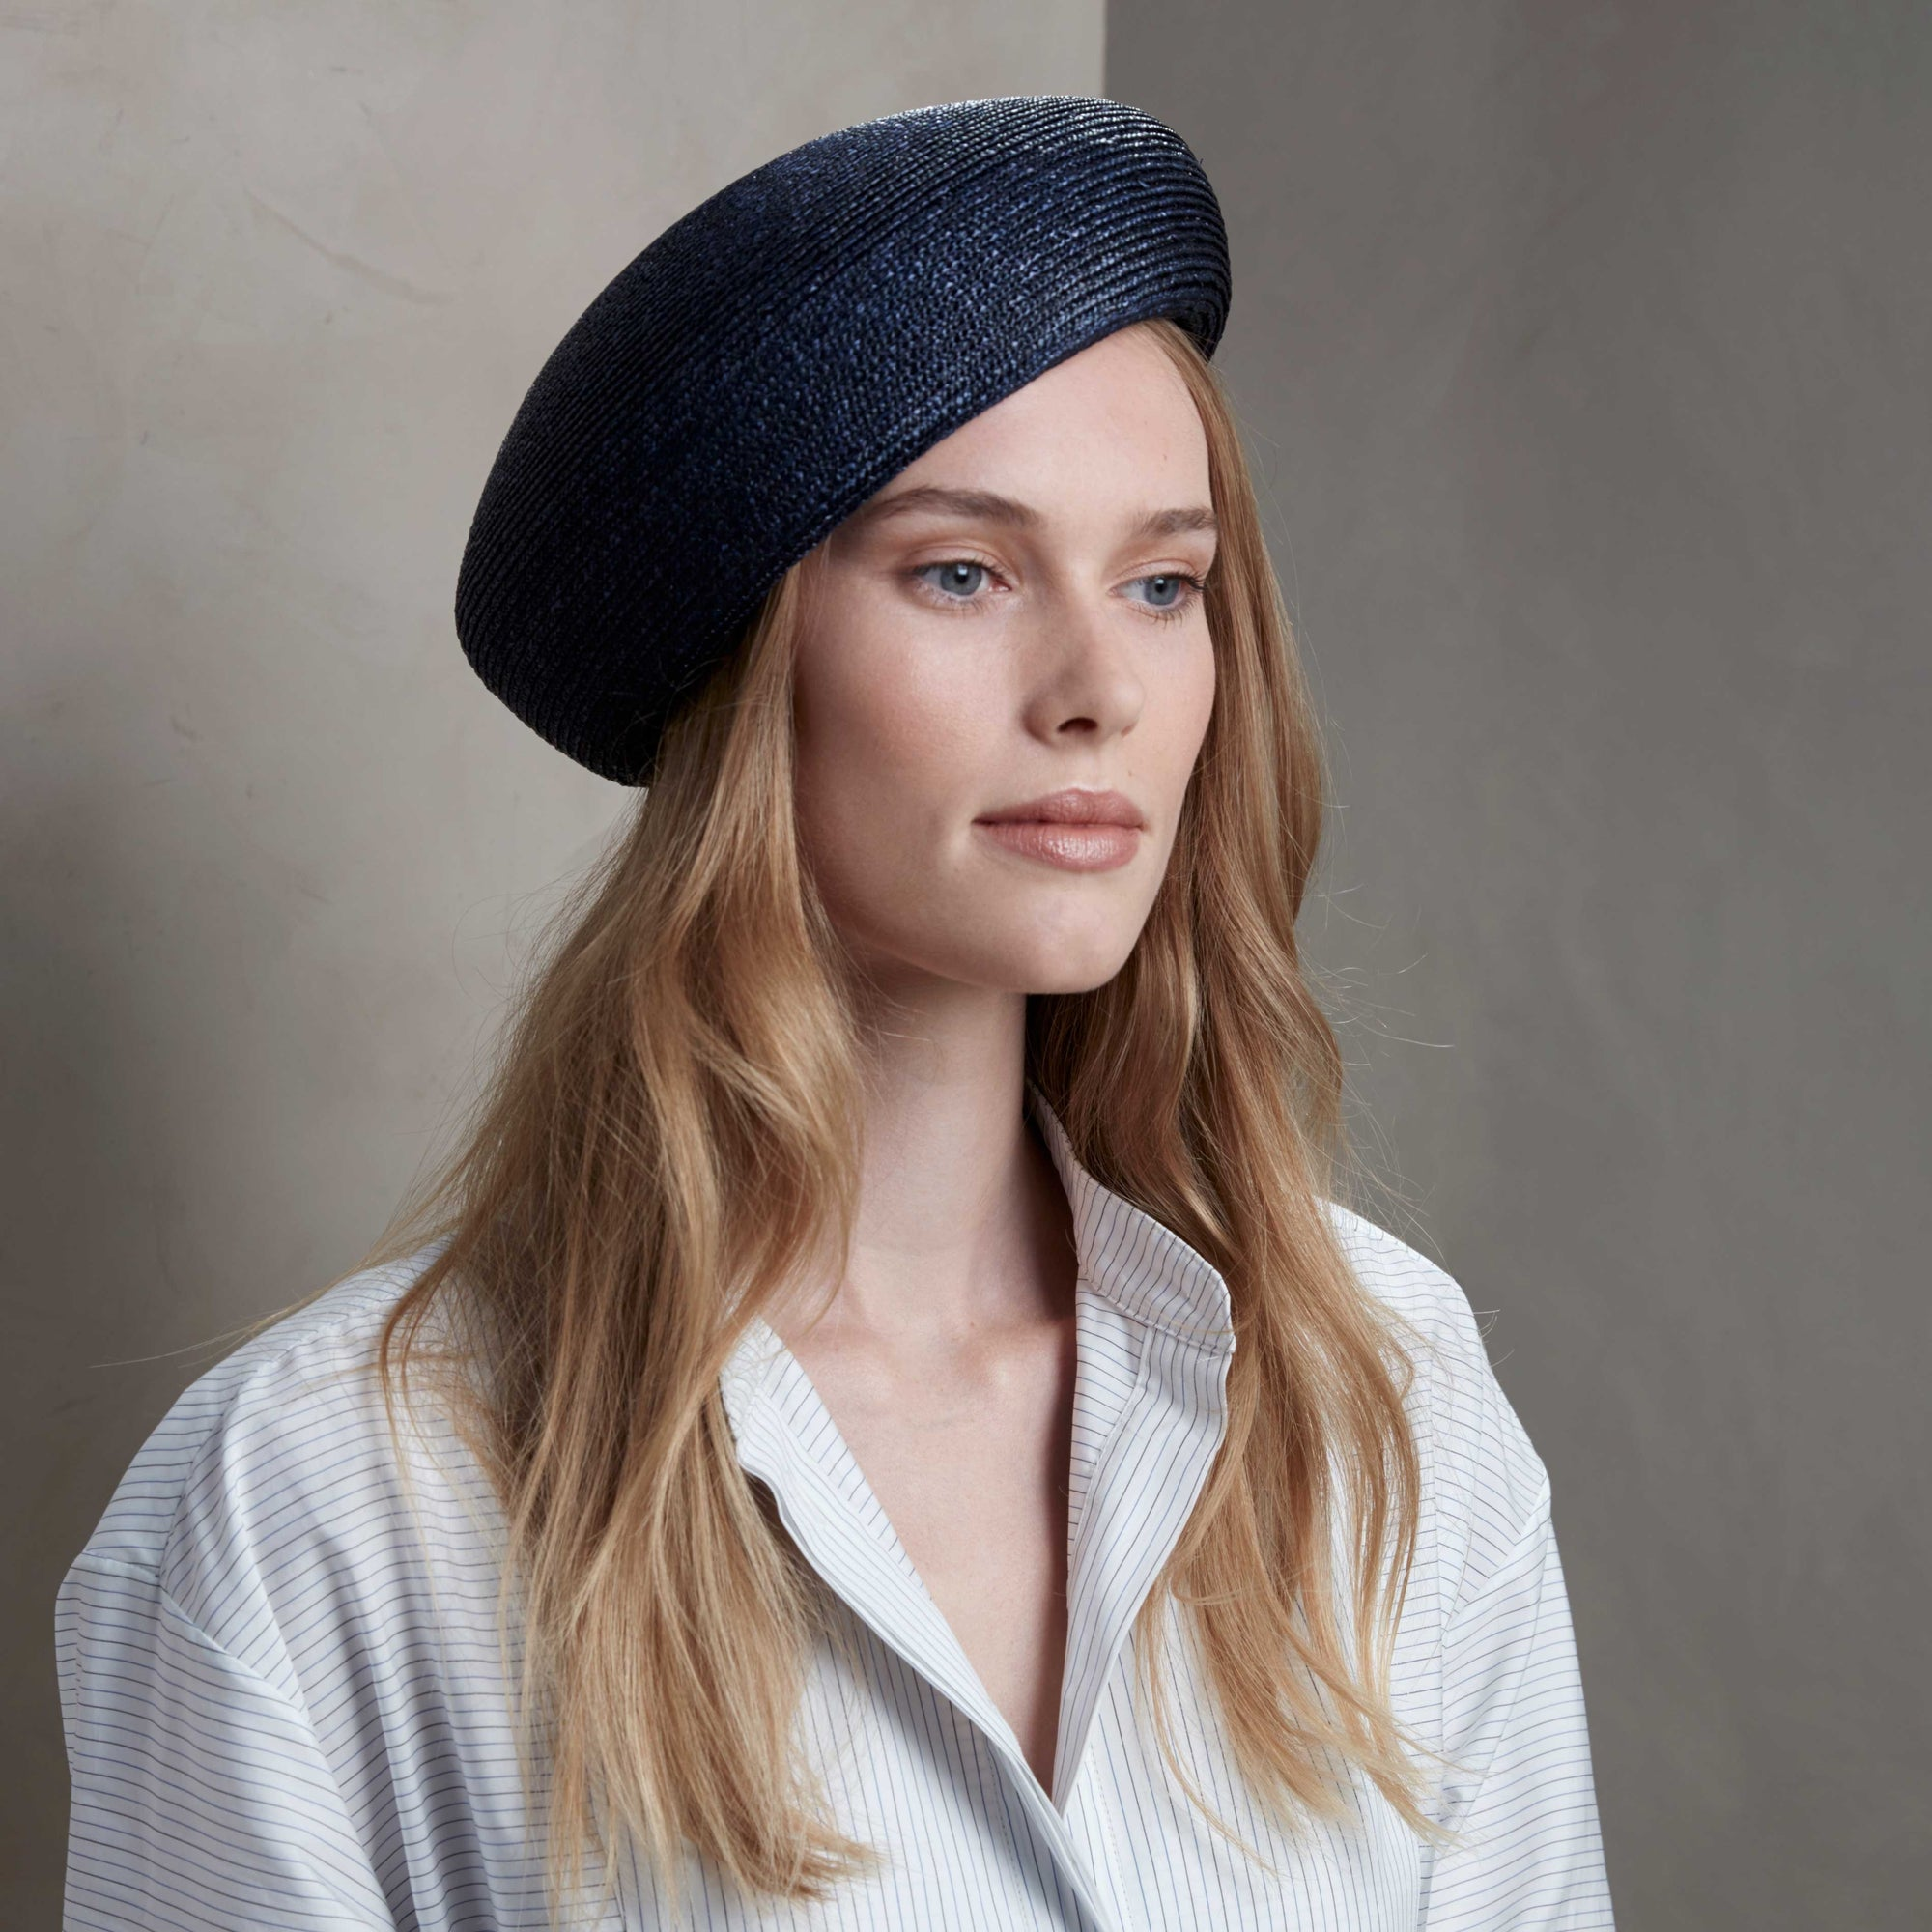 Peddle blocked beret - Women's hats - Lock & Co. Hatters London UK